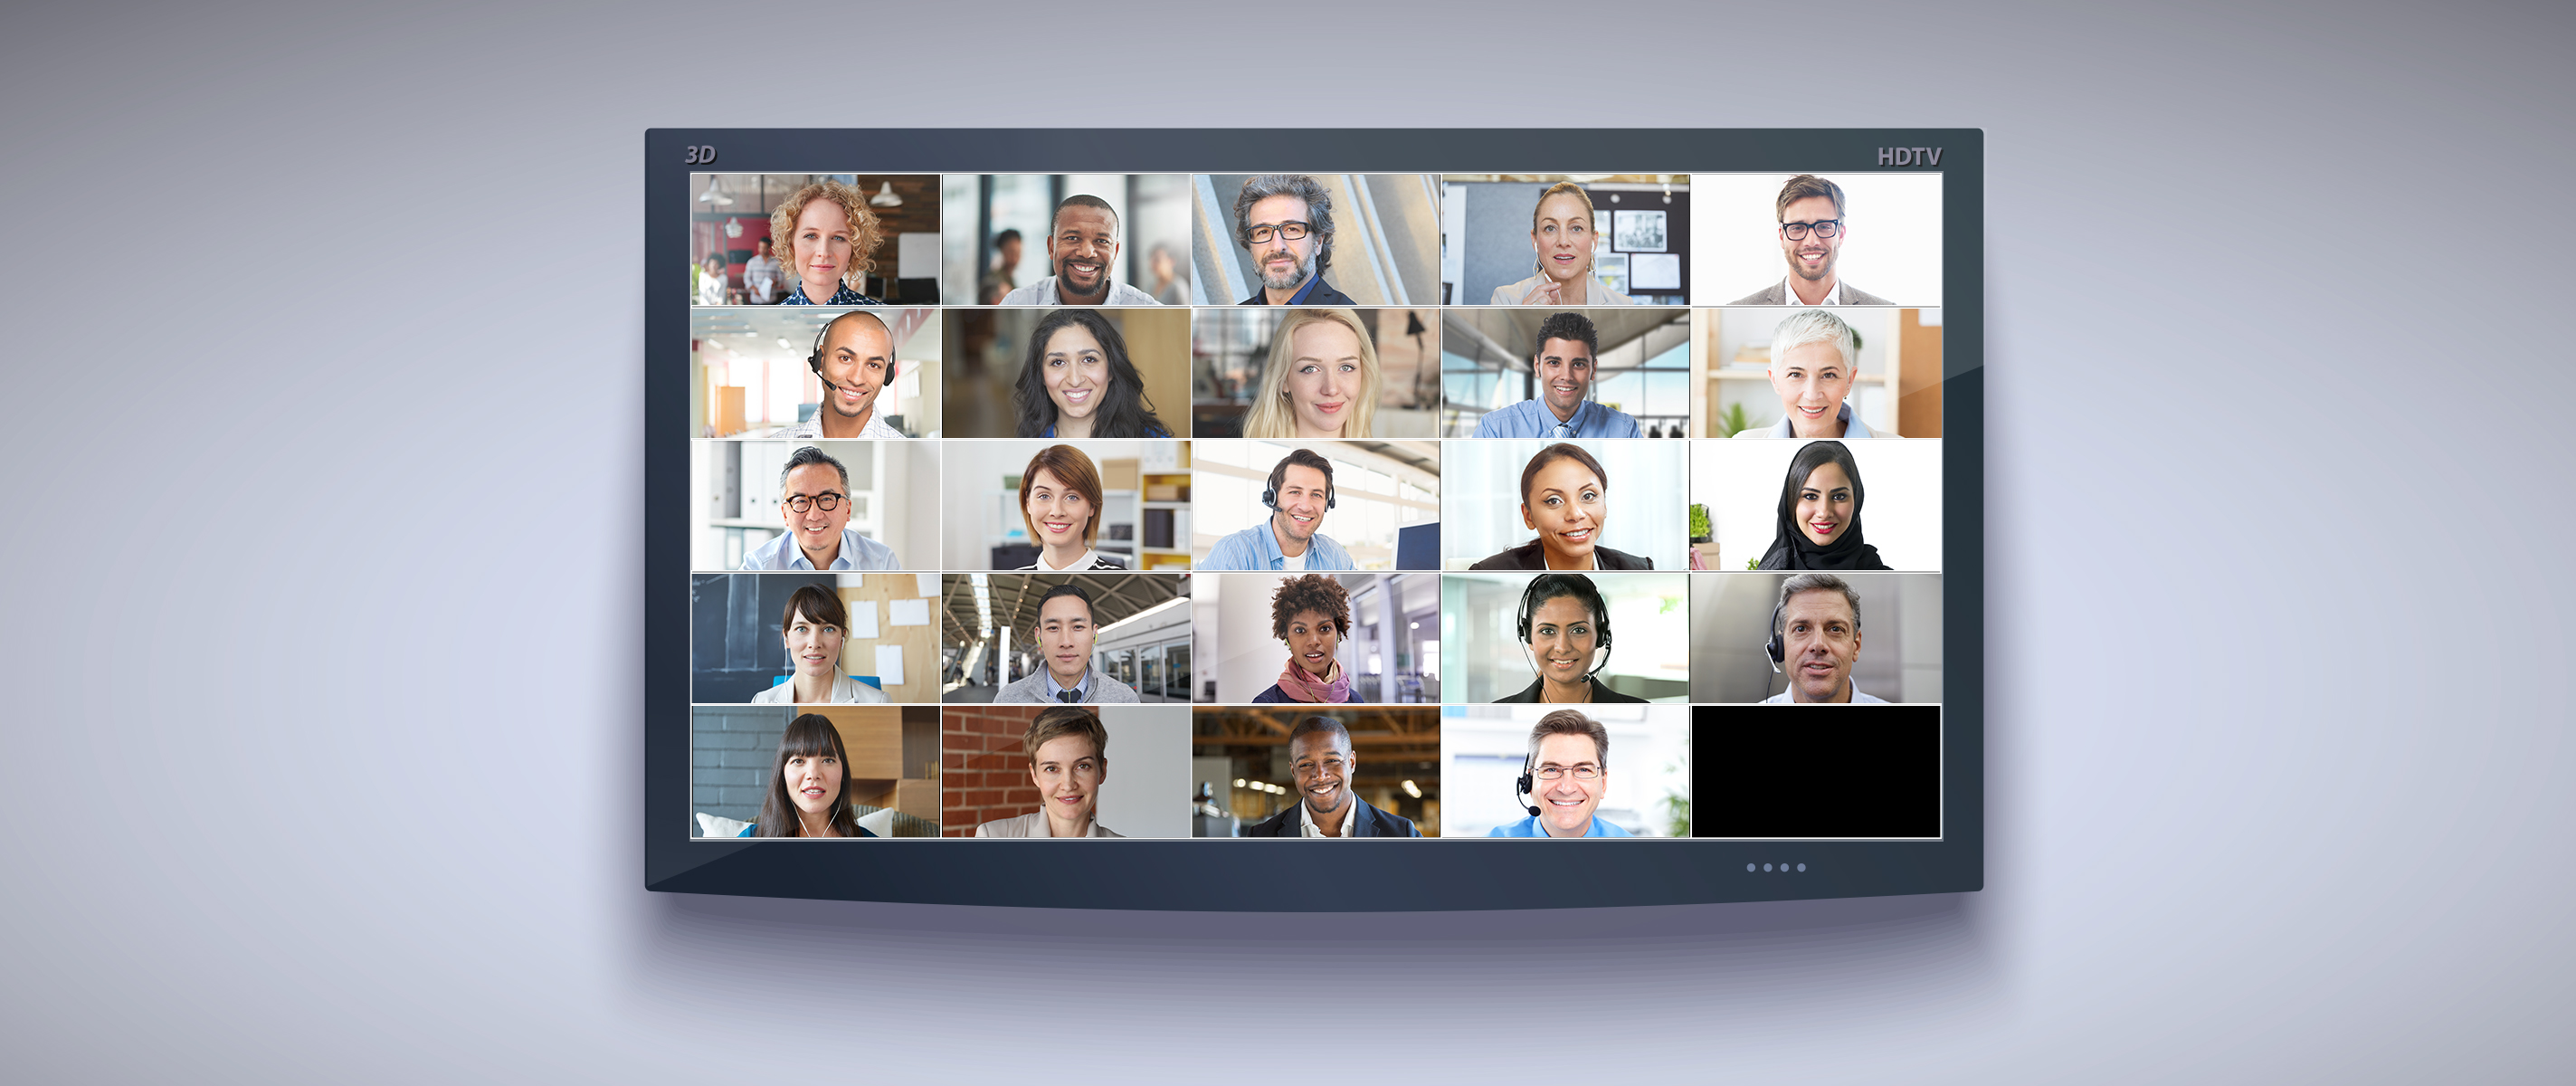 GoToMeeting InRoom Link Conferencing